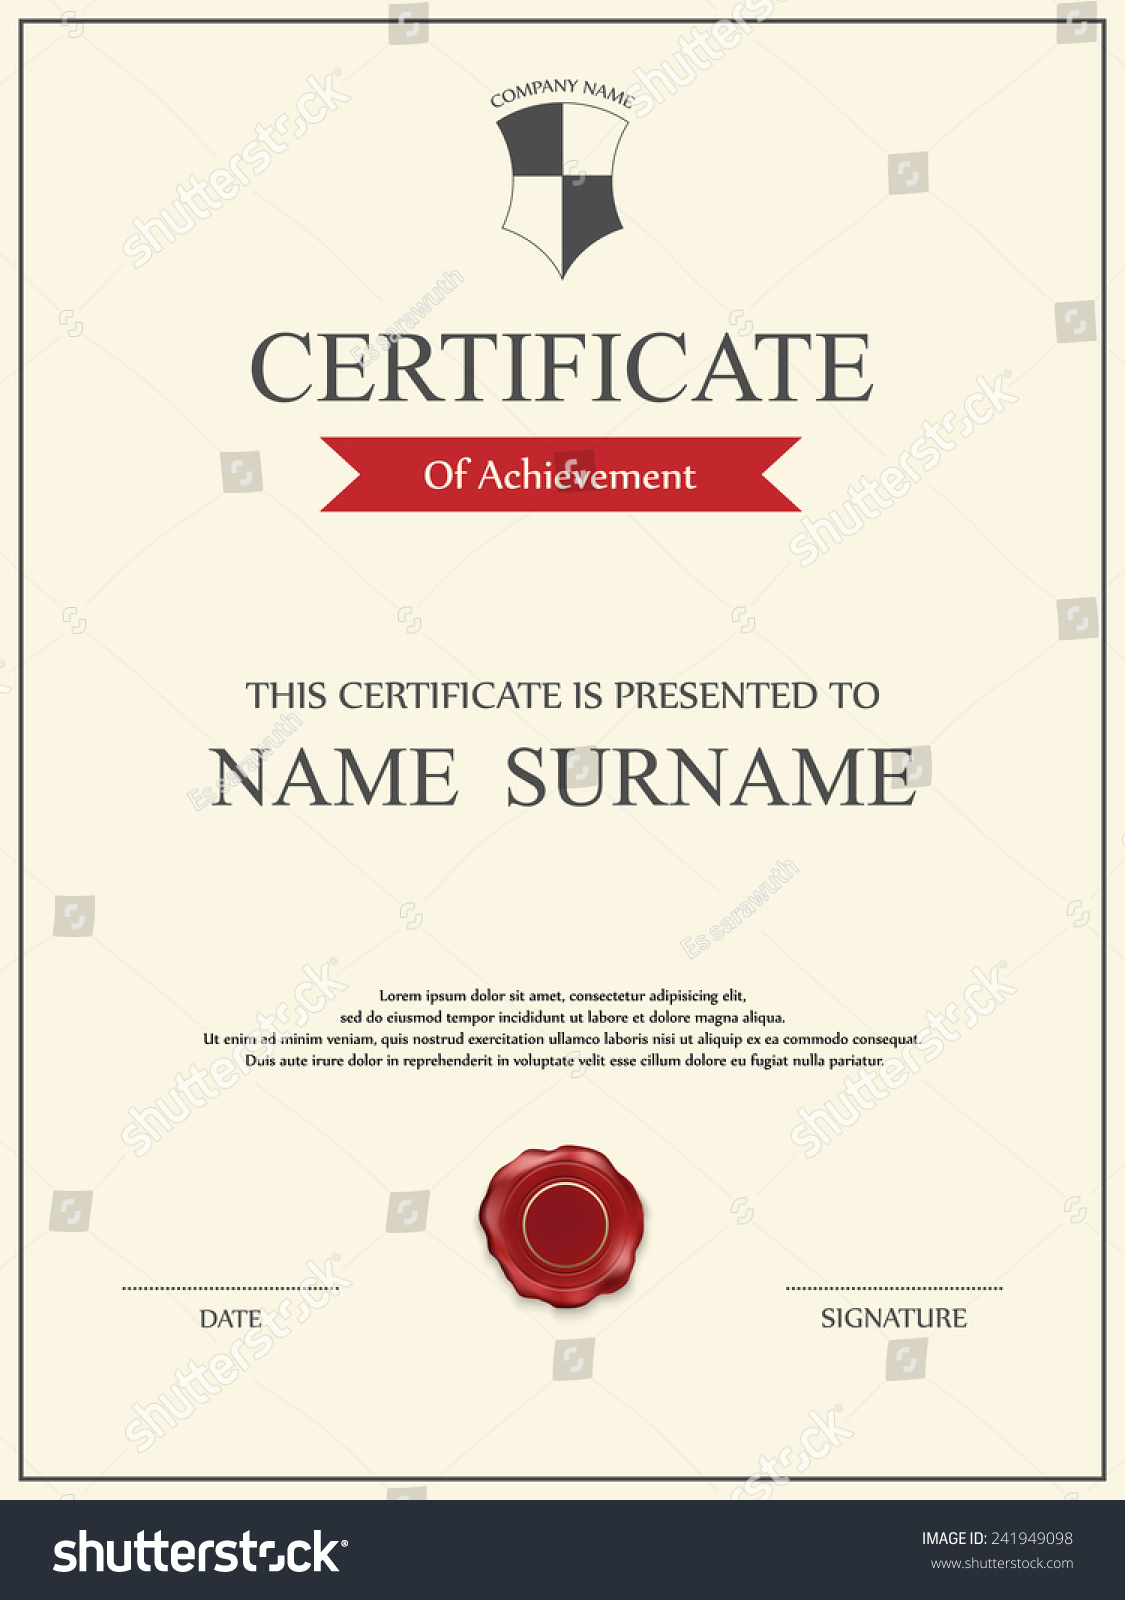 Football certificate template gallery templates example free football certificate template resume format for teacher job 100 soccer certificate template certificate of achievement stock yadclub Images